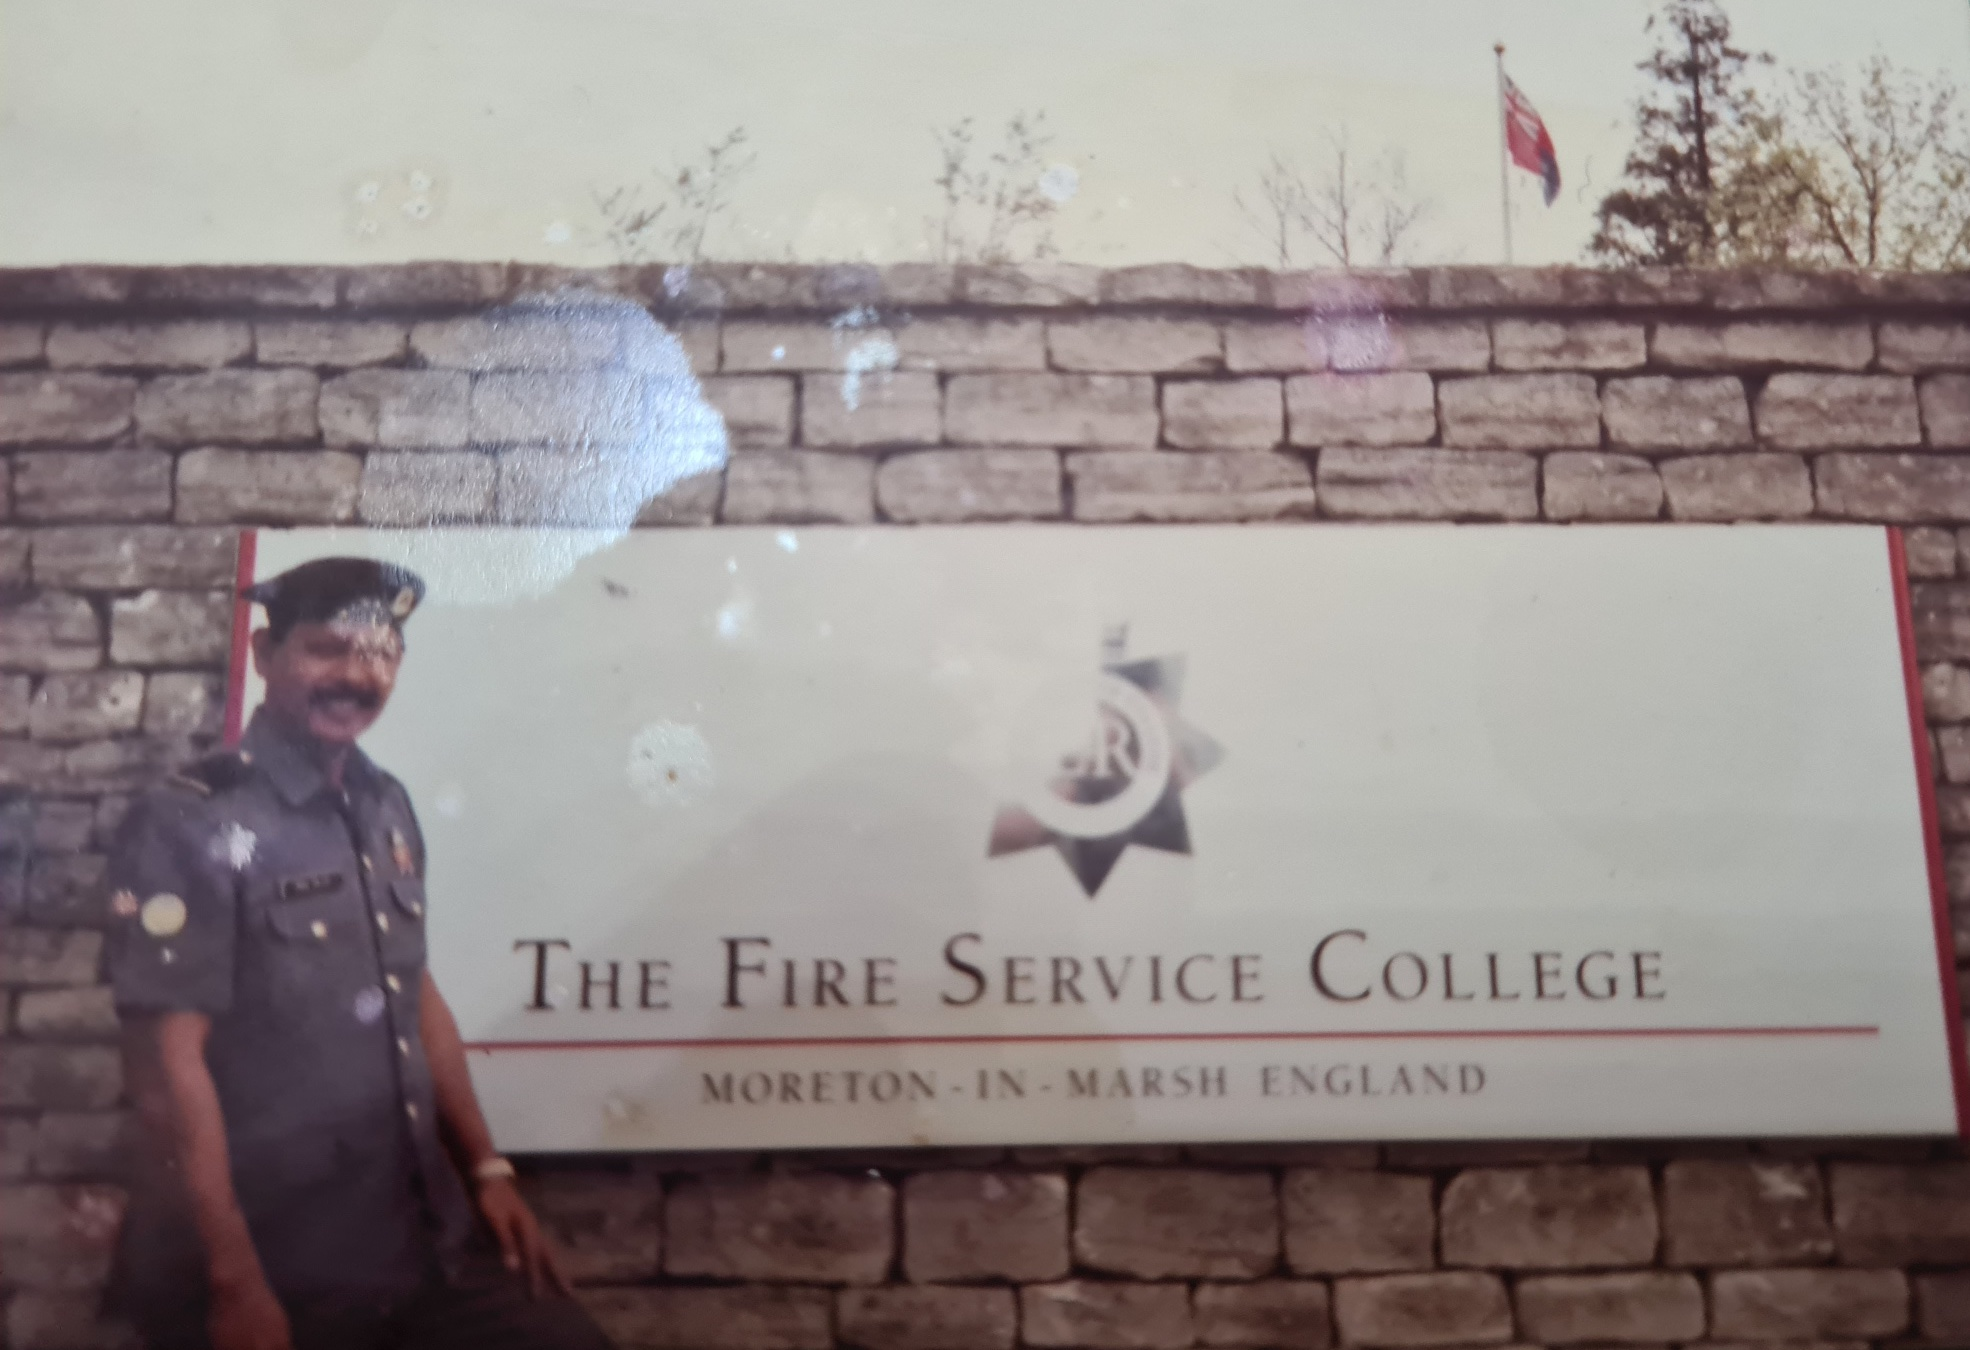 SWO (RET) Md Salleh at the Fire Service College, Moreton-in-Marsh, United Kingdom, from 29 March to 17 April 1992.